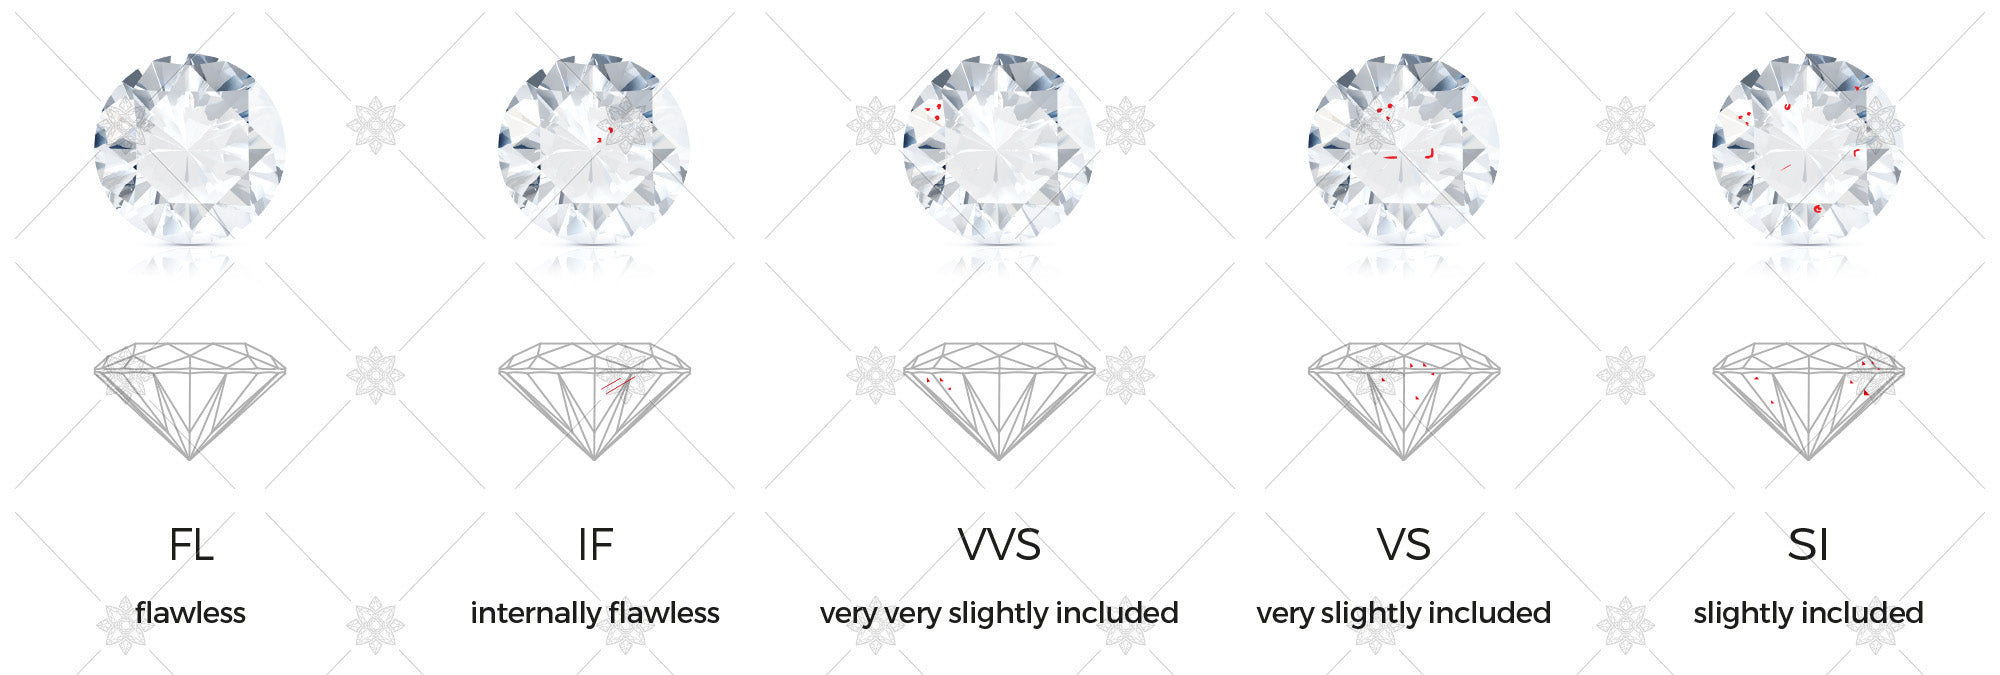 Diamond Clarity - 4C's Diamond Education